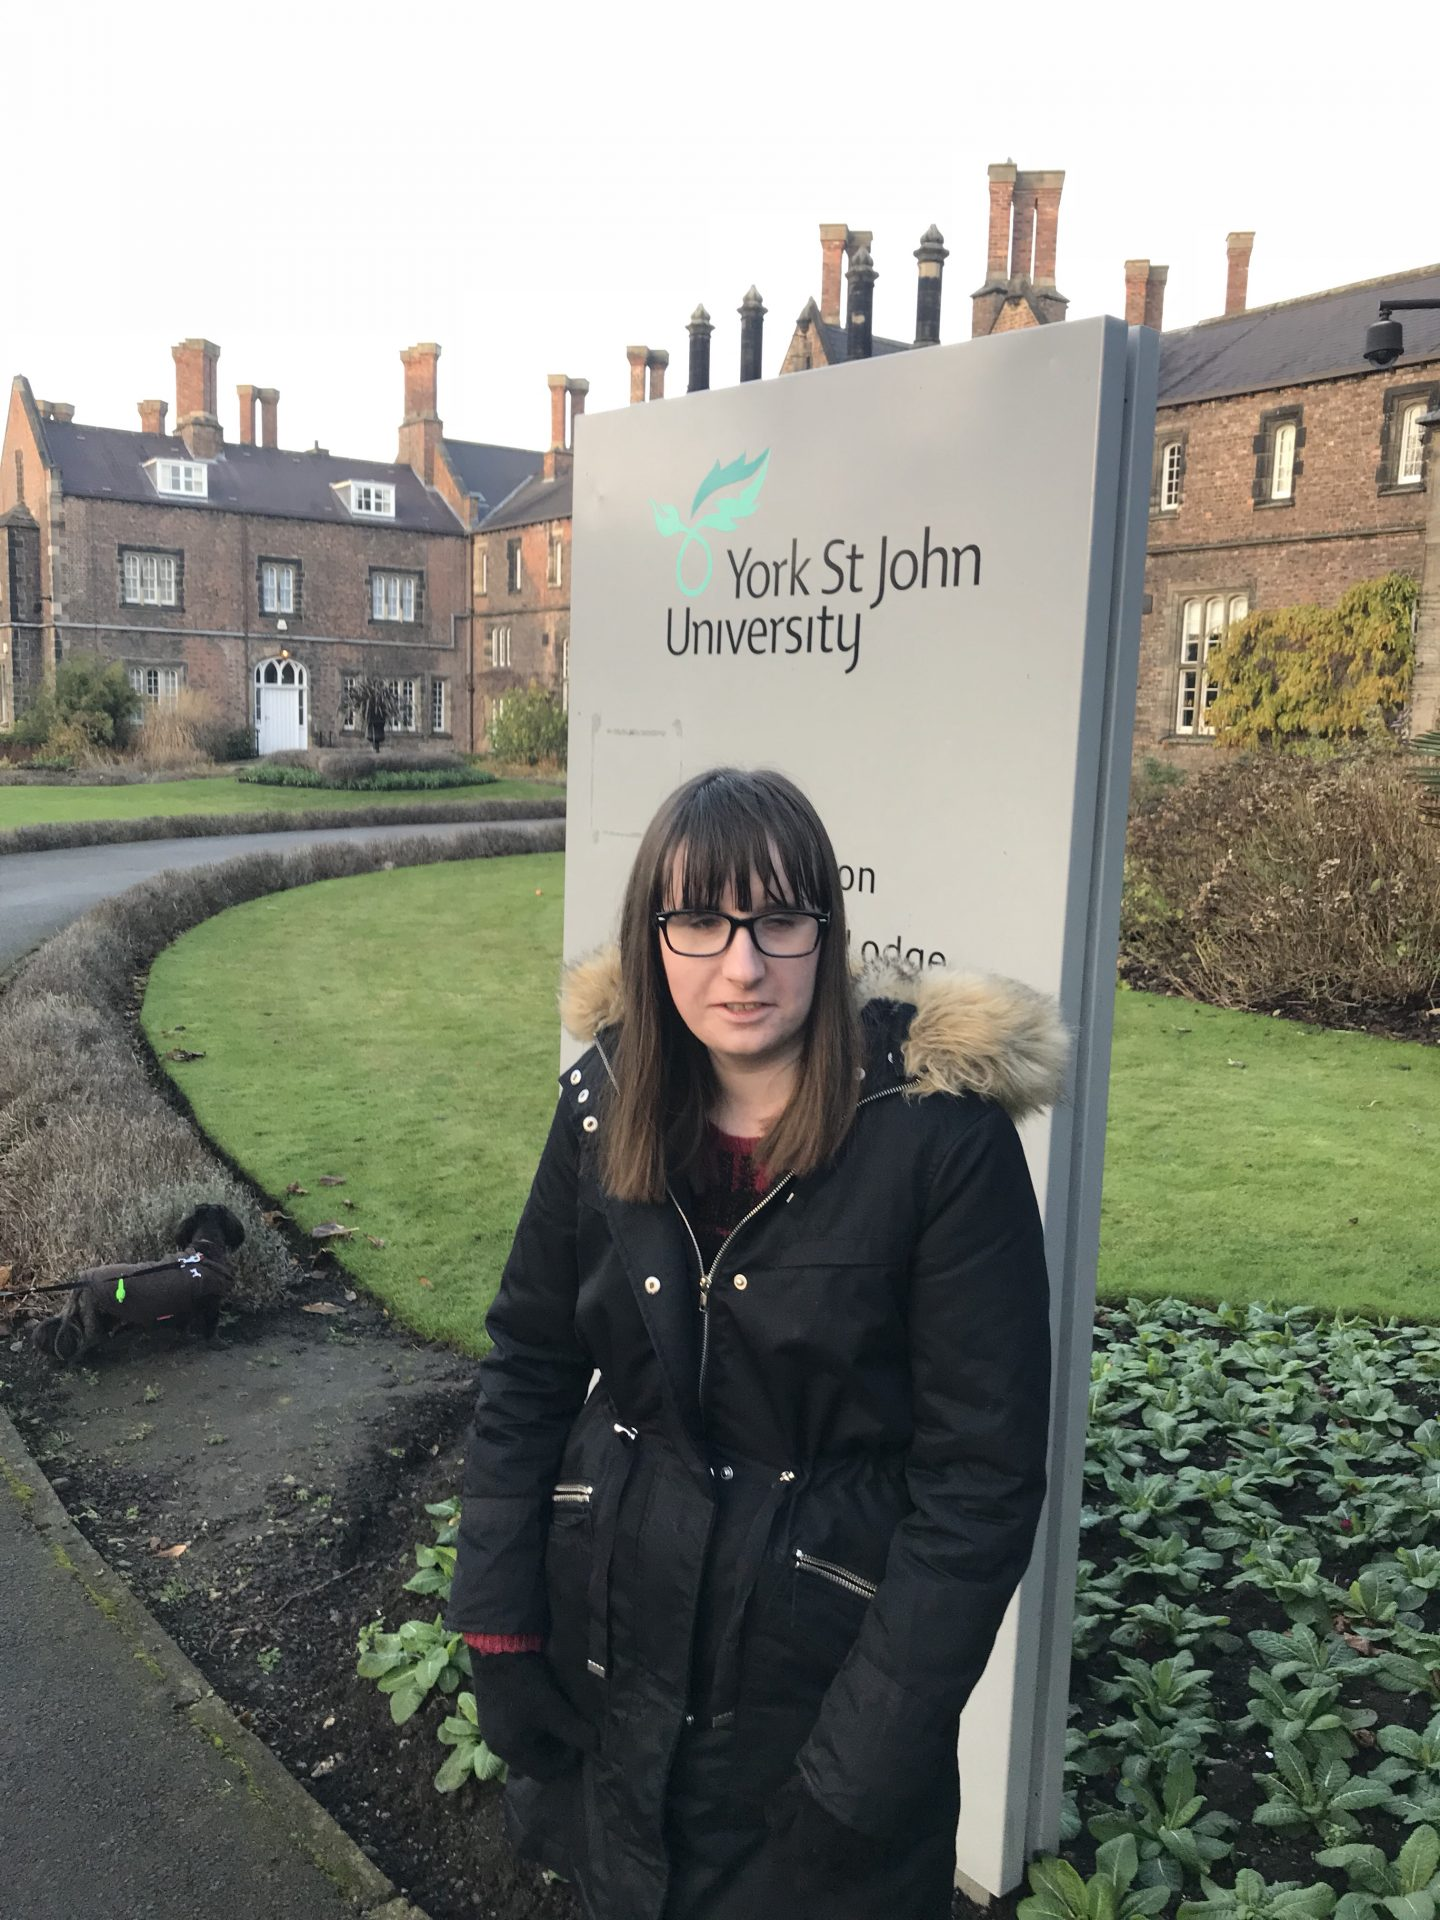 Holly standing outside one of the buildings at York St John University, with the York St John University sign in the background